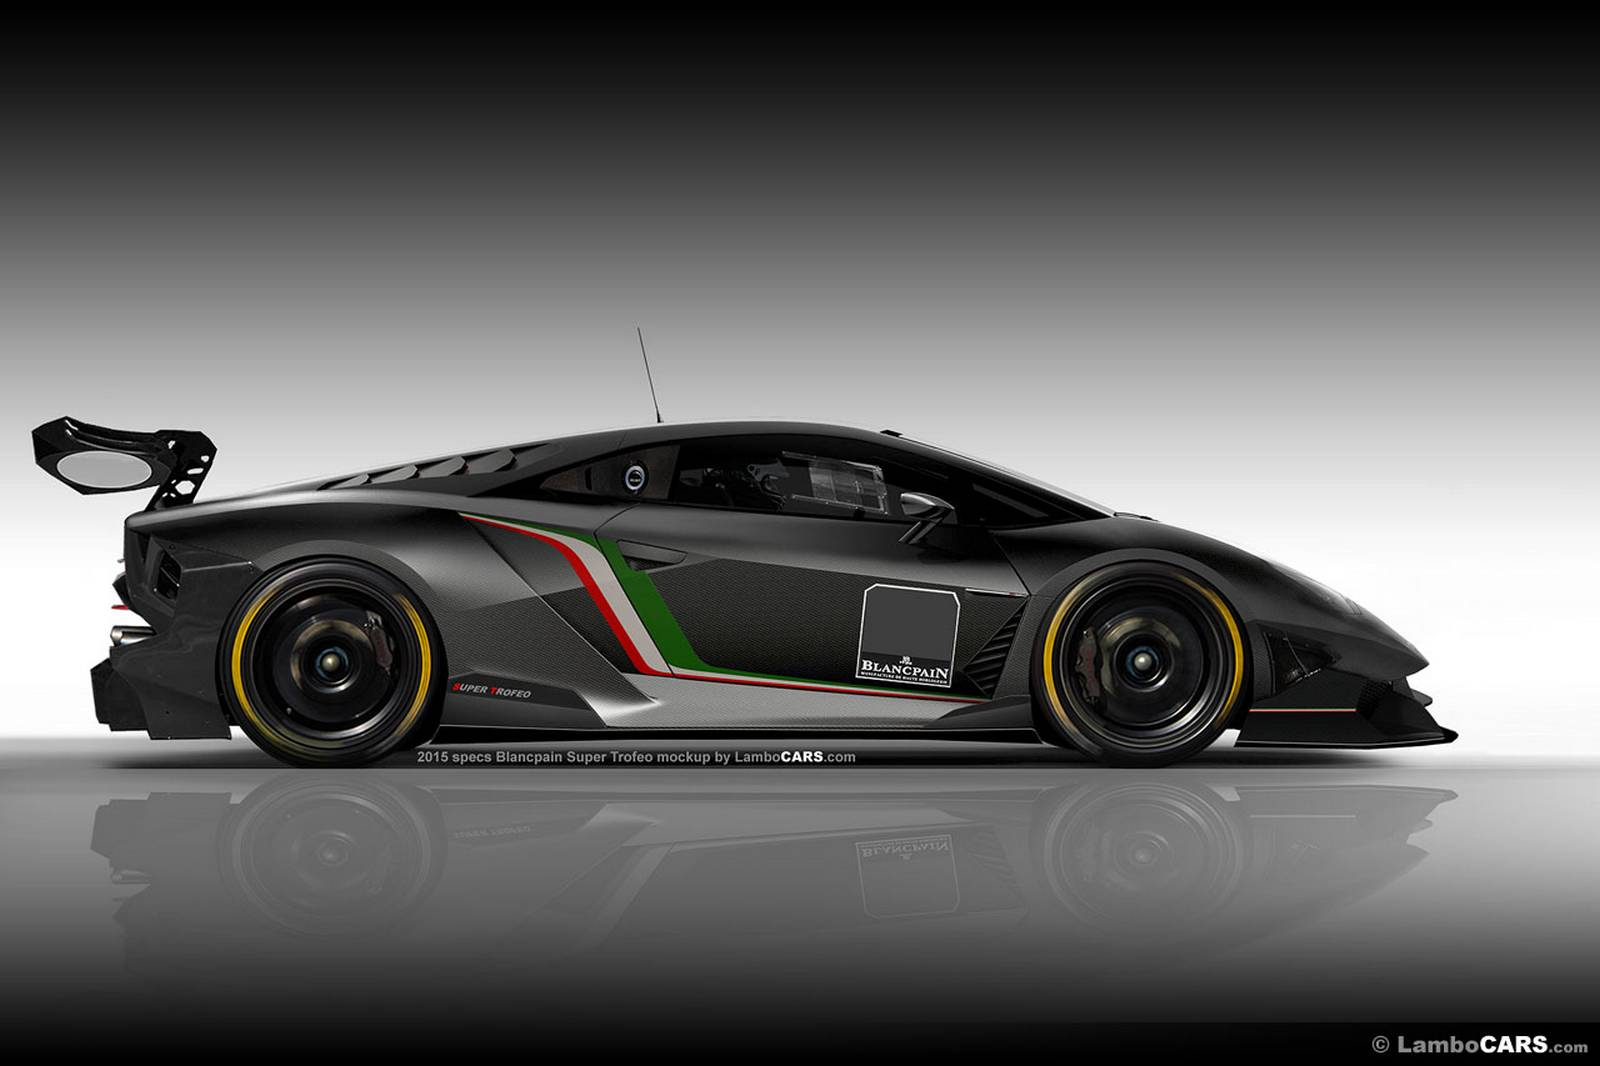 2015 lamborghini super trofeo racer to be based on gallardo successor gtspirit. Black Bedroom Furniture Sets. Home Design Ideas